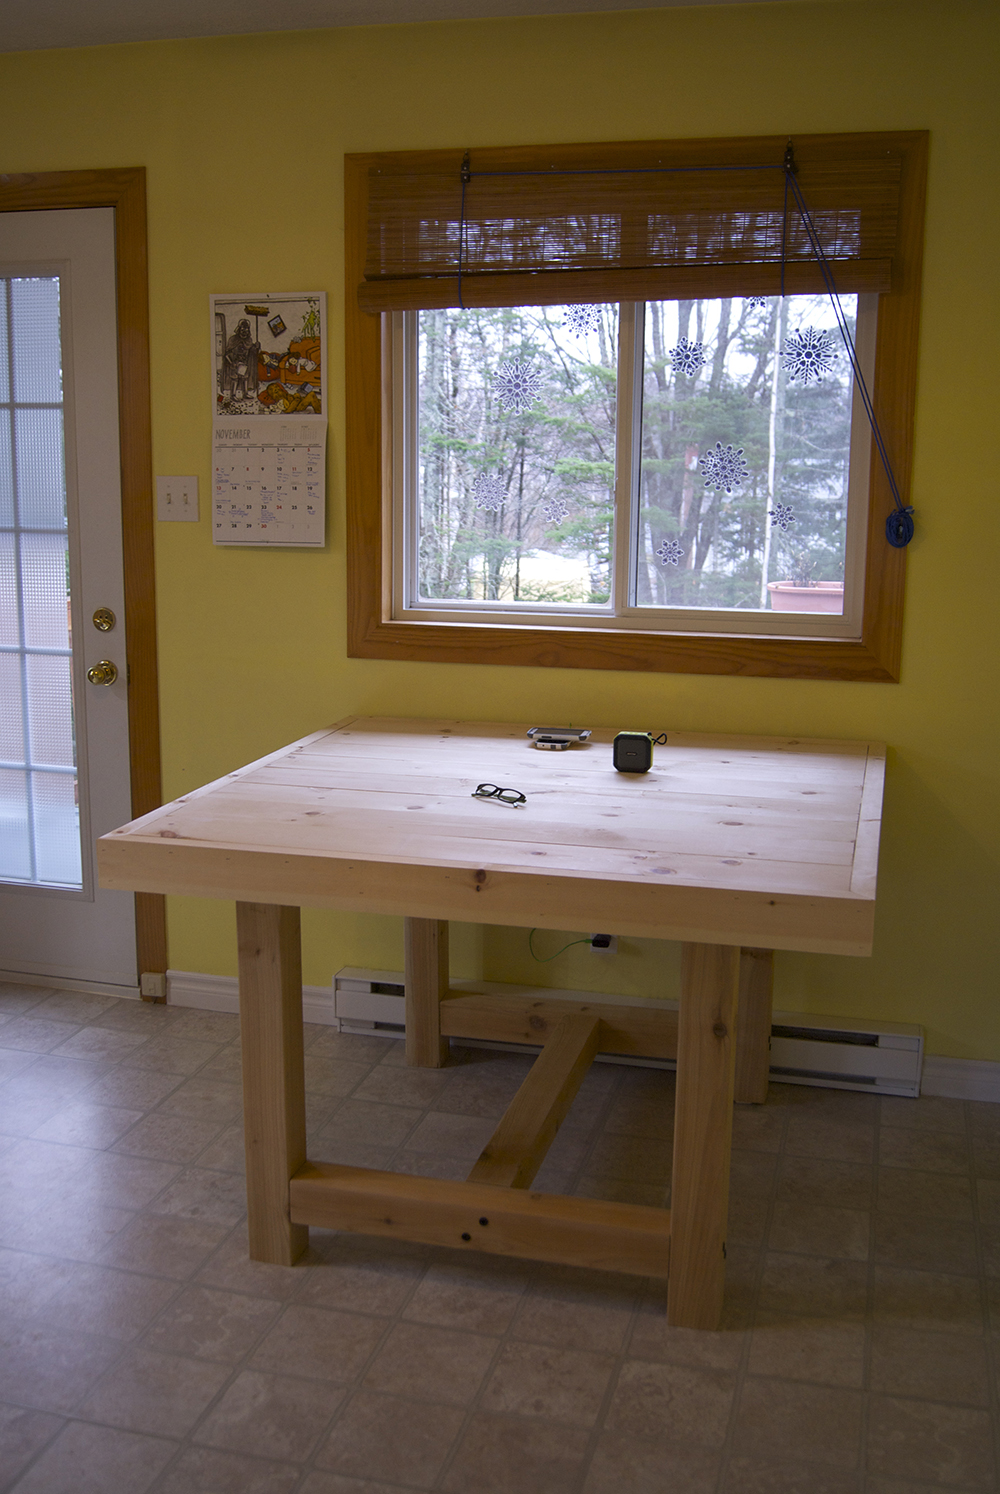 Morning: Adding the table trim, and looking more complete!